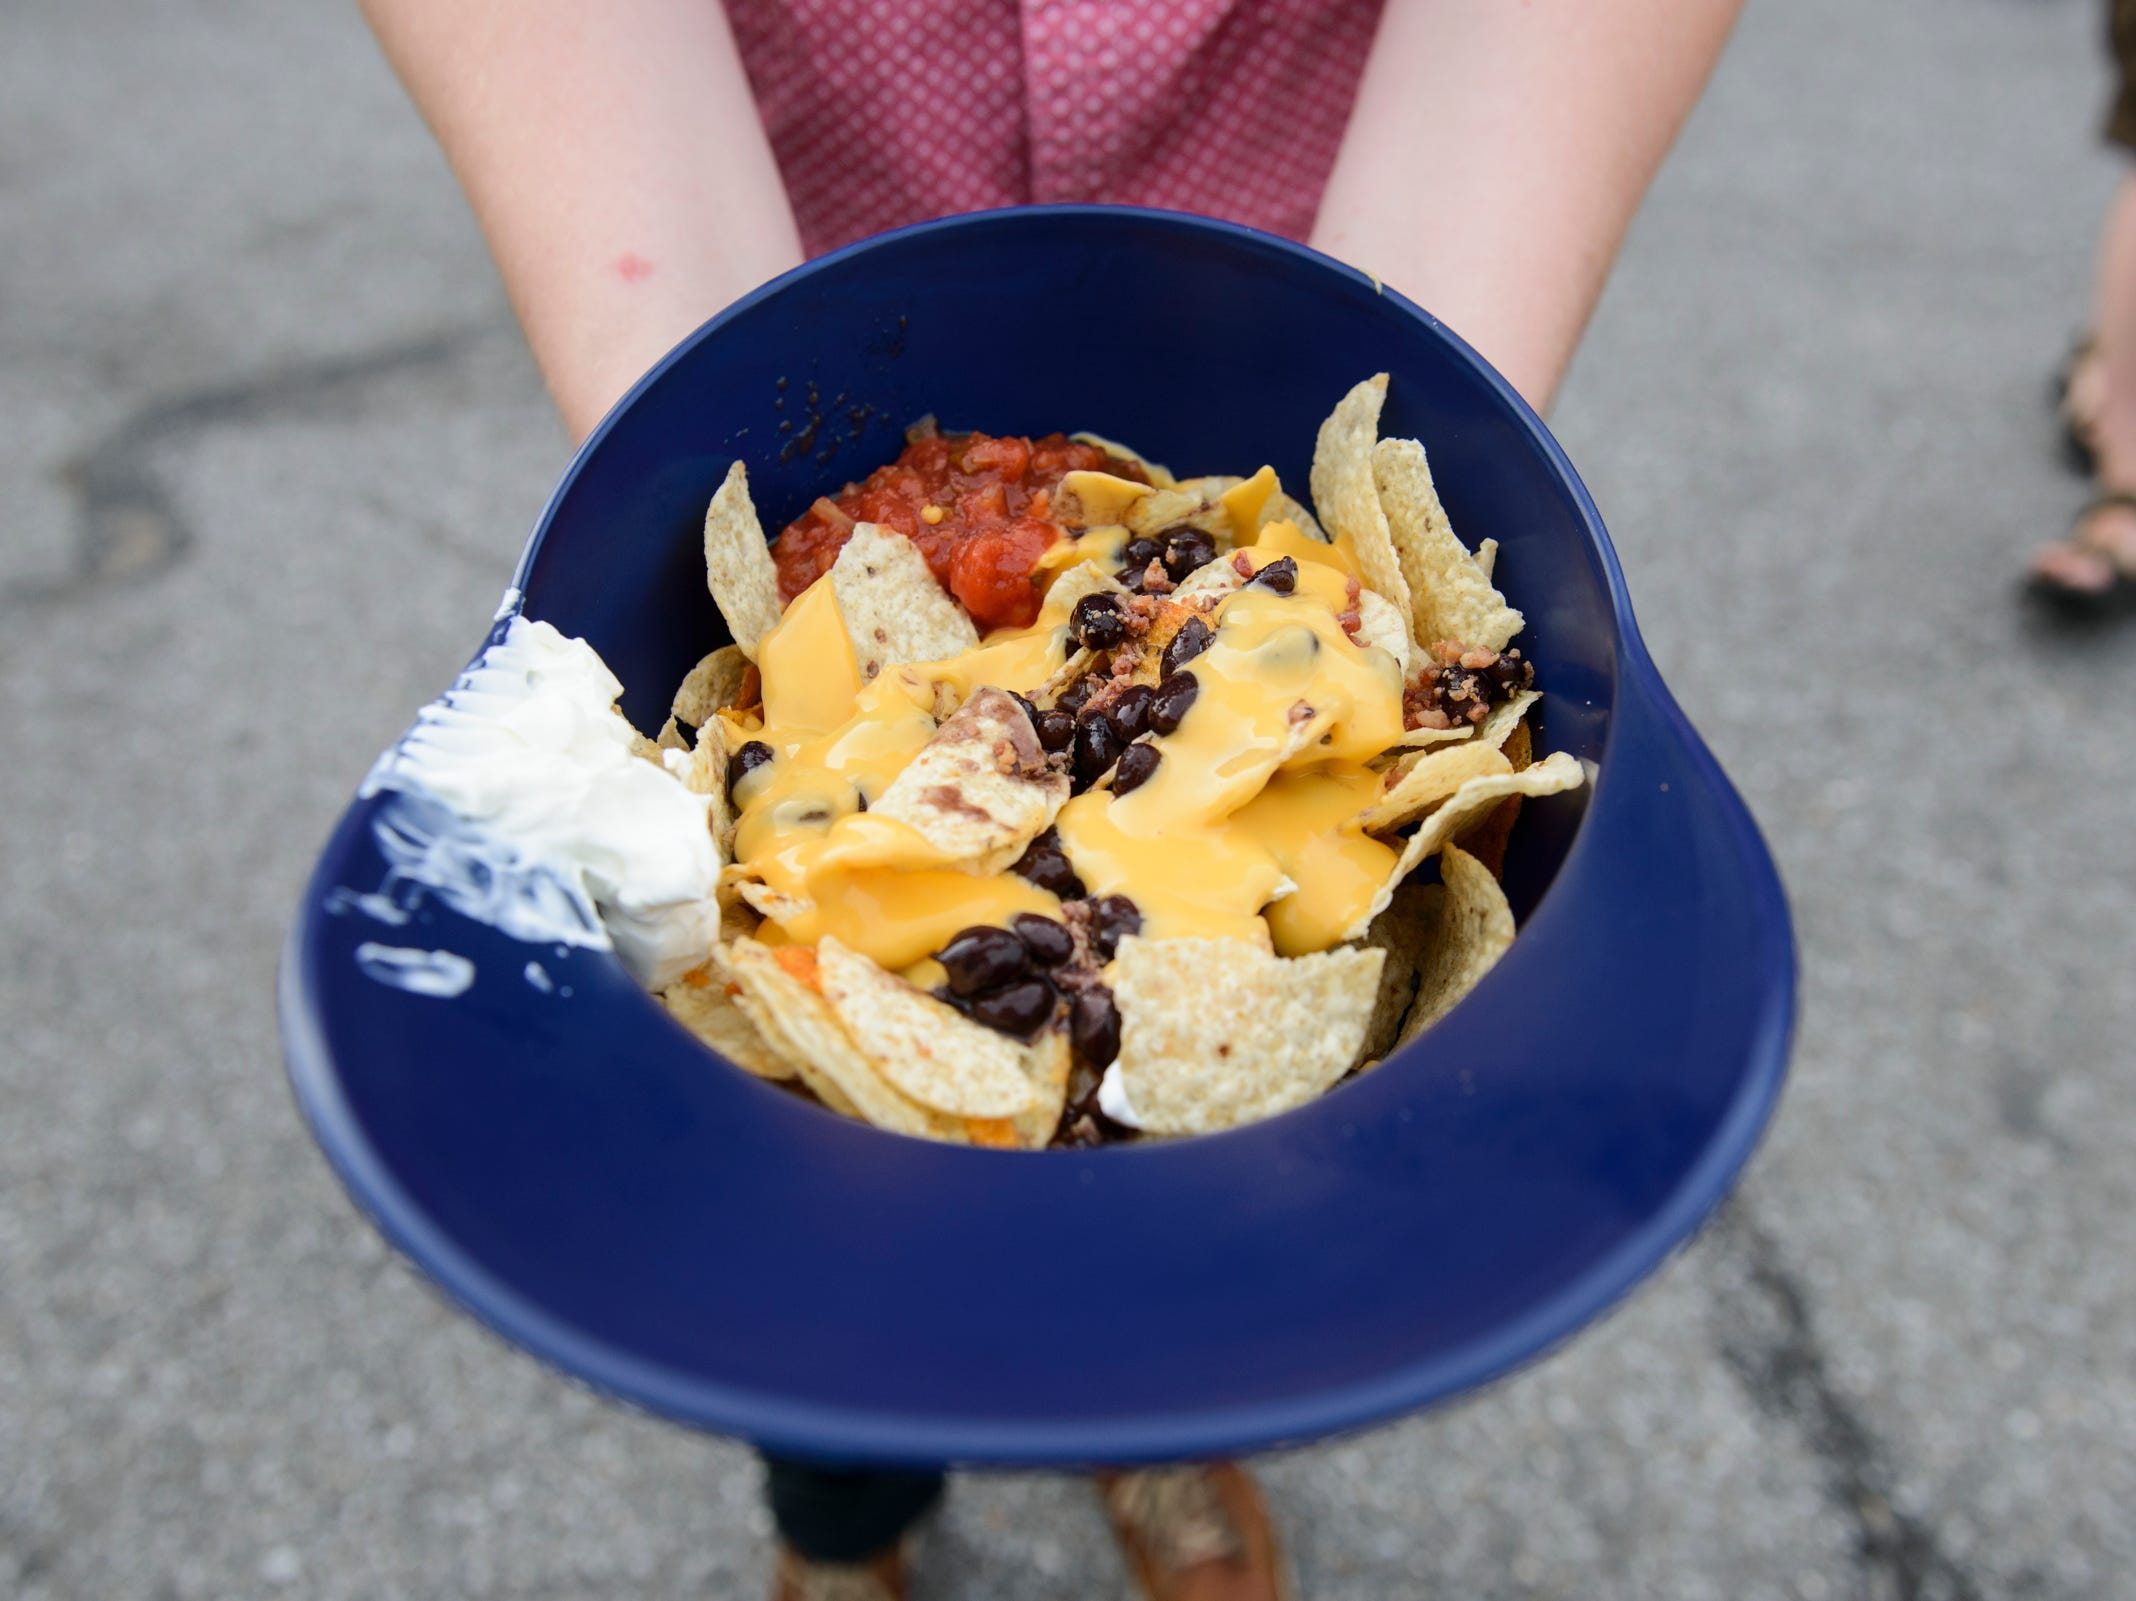 Reporter Will DiGravio shows off the Ballpark Nachos served in a full-size souvenir helmet at the Vermont Lake Monsters game at Centennial Field on Tuesday night July 17, 2018, in Burlington.